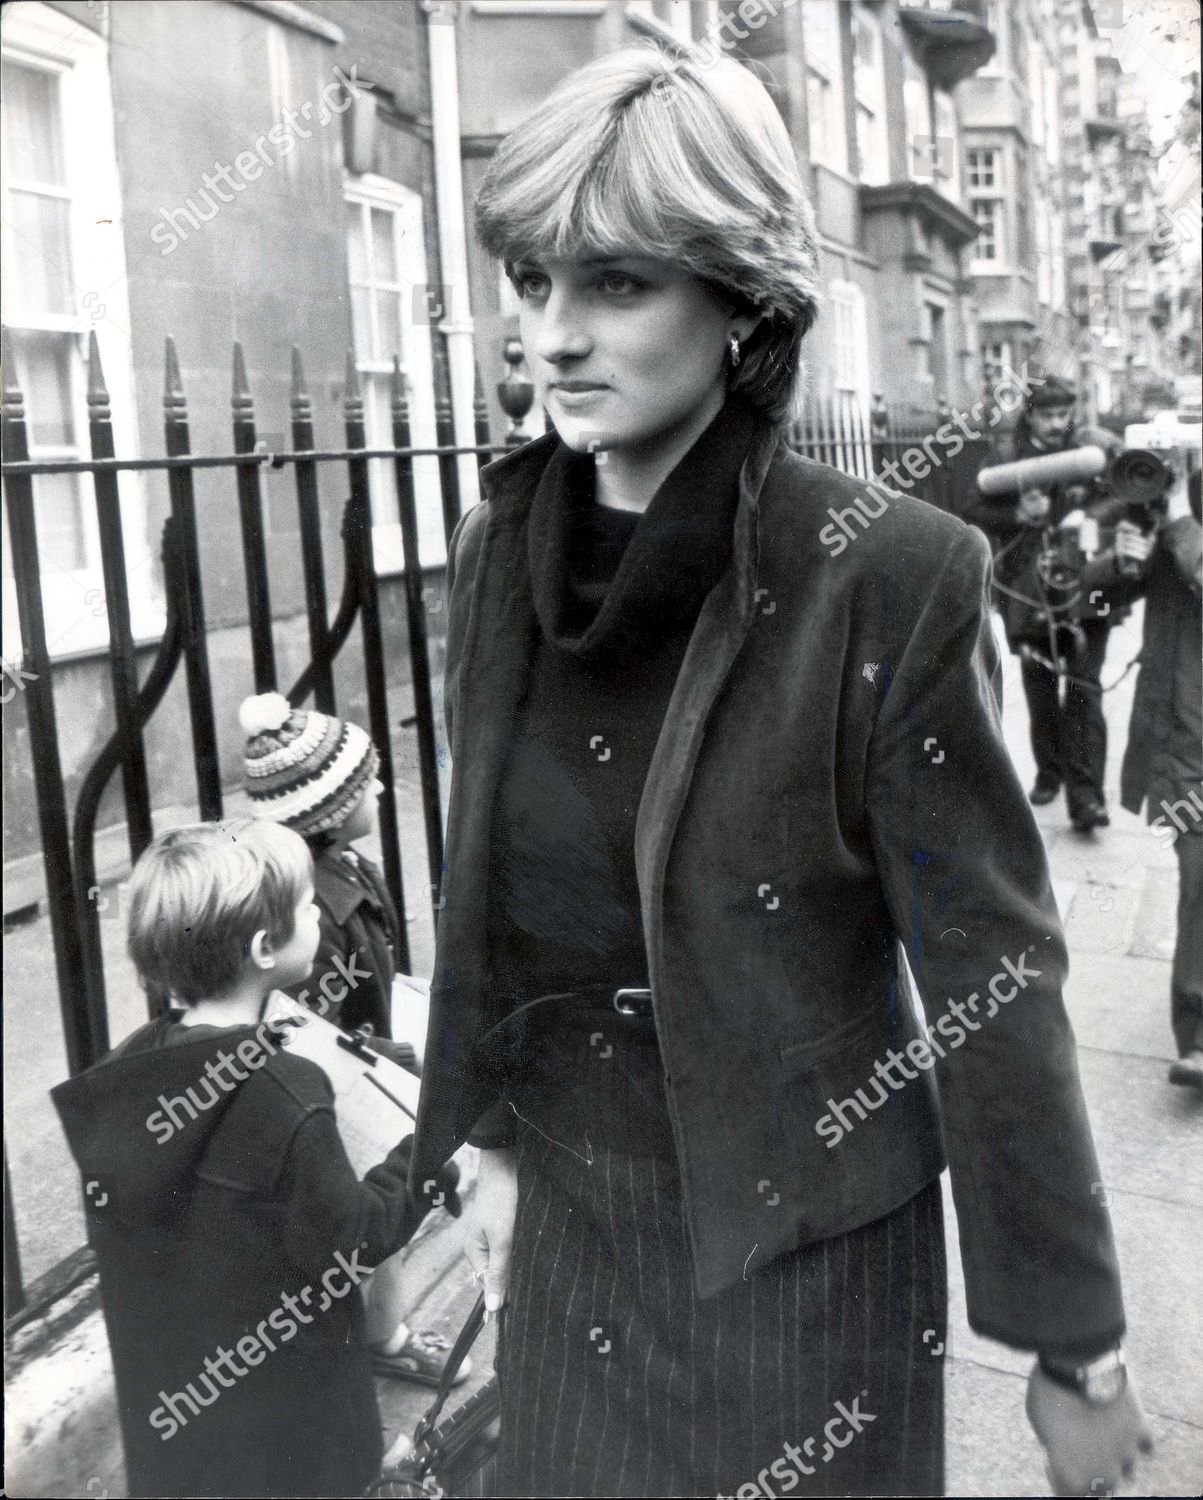 lady diana spencer editorial stock photo stock image shutterstock https www shutterstock com editorial image editorial princess of wales before marriage 1980 only lady diana spencer leaves her old brompton flat this afternoon for an unknown destination pursued by press photographers amid rumours that prince charles will announce his engagement to lady diana spenc 1145678a